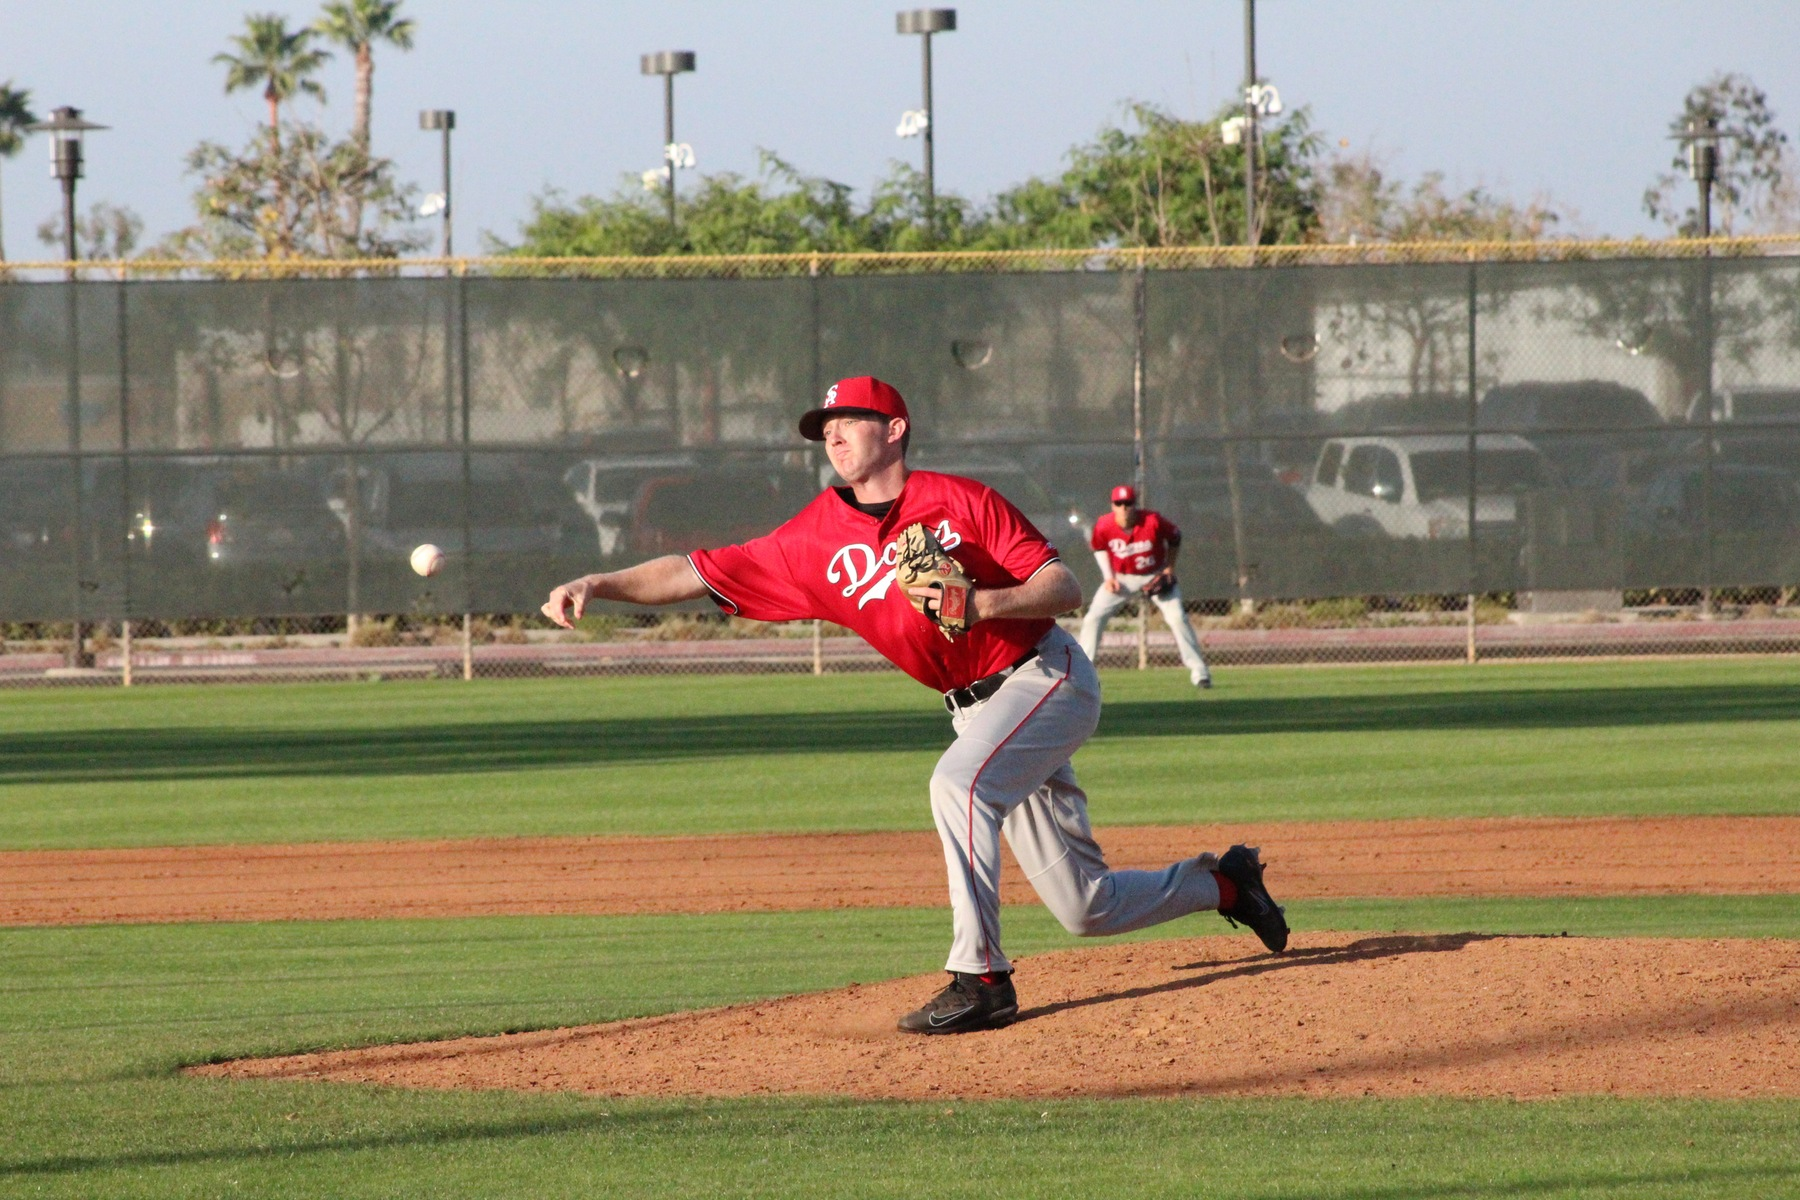 Dons Lose Pitcher's Duel 1-0